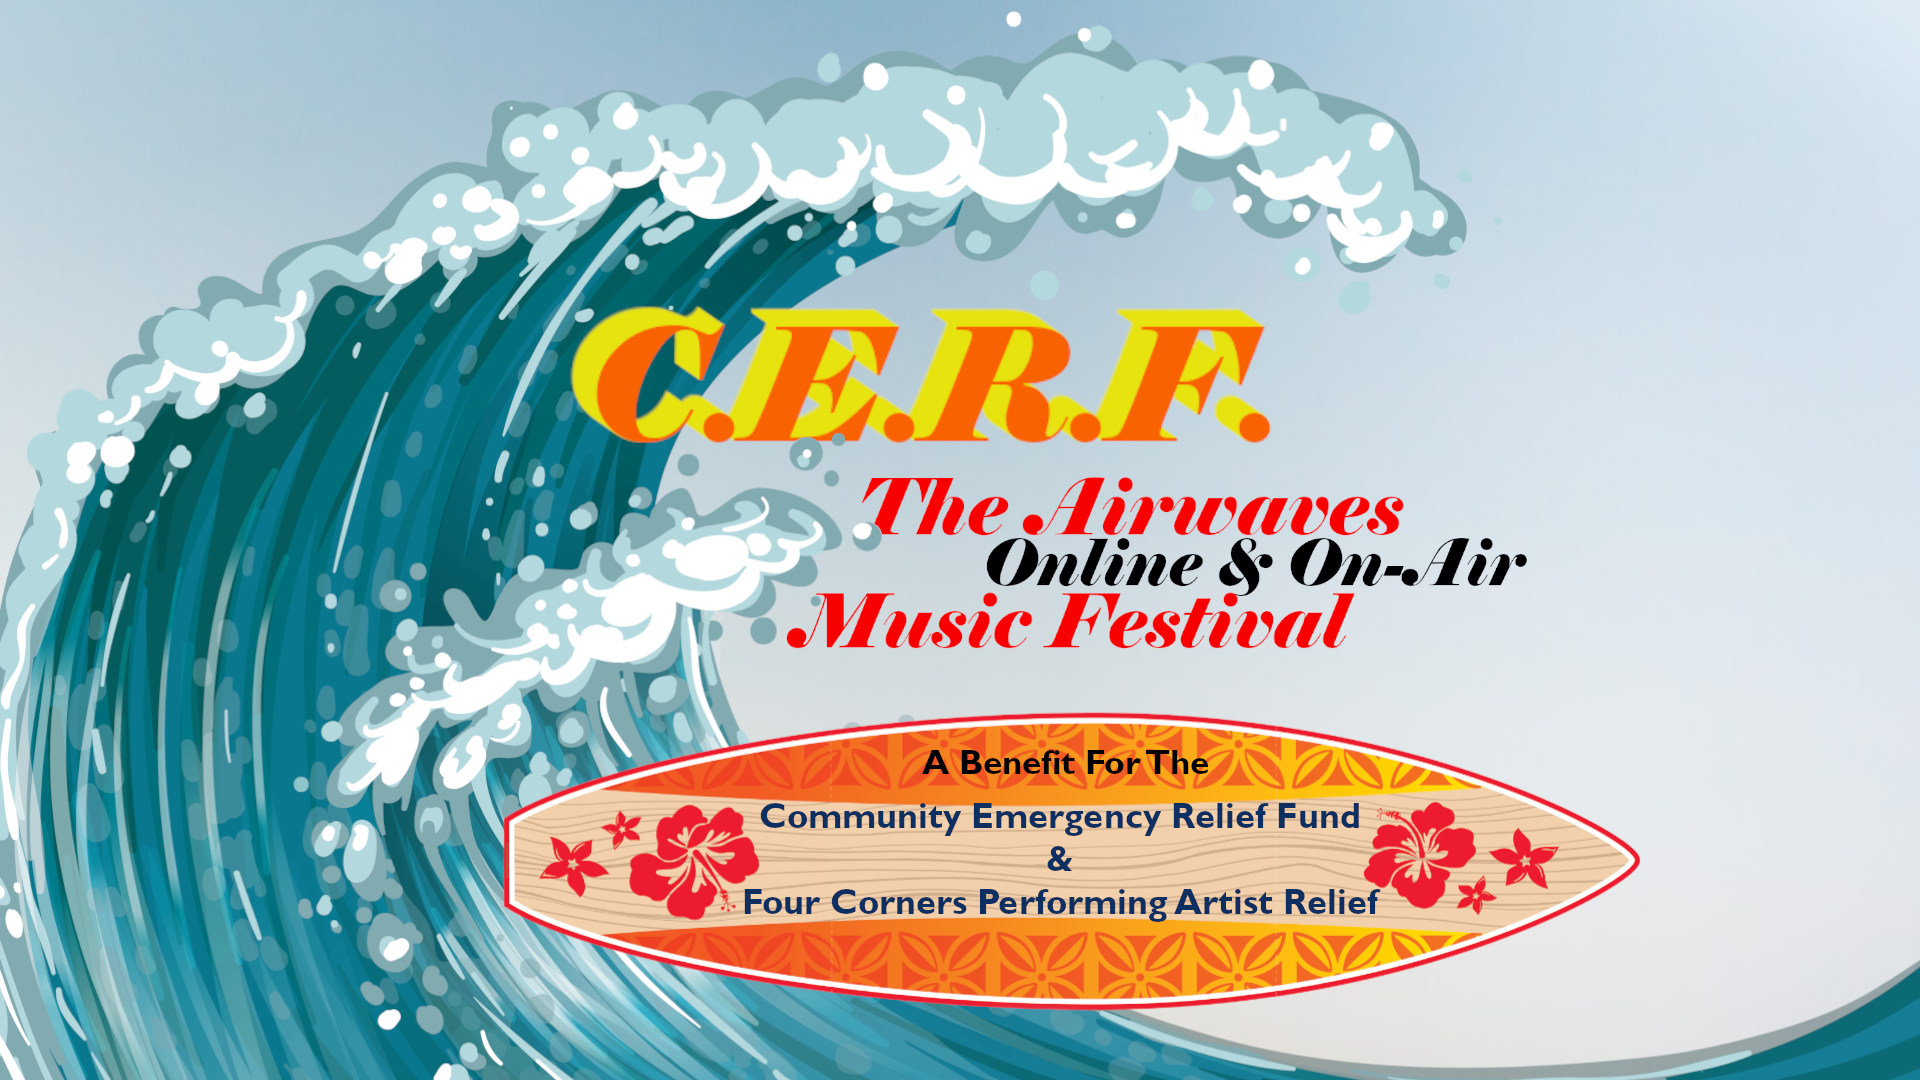 C.E.R.F. The Airwaves Online & On-Air Music Festival